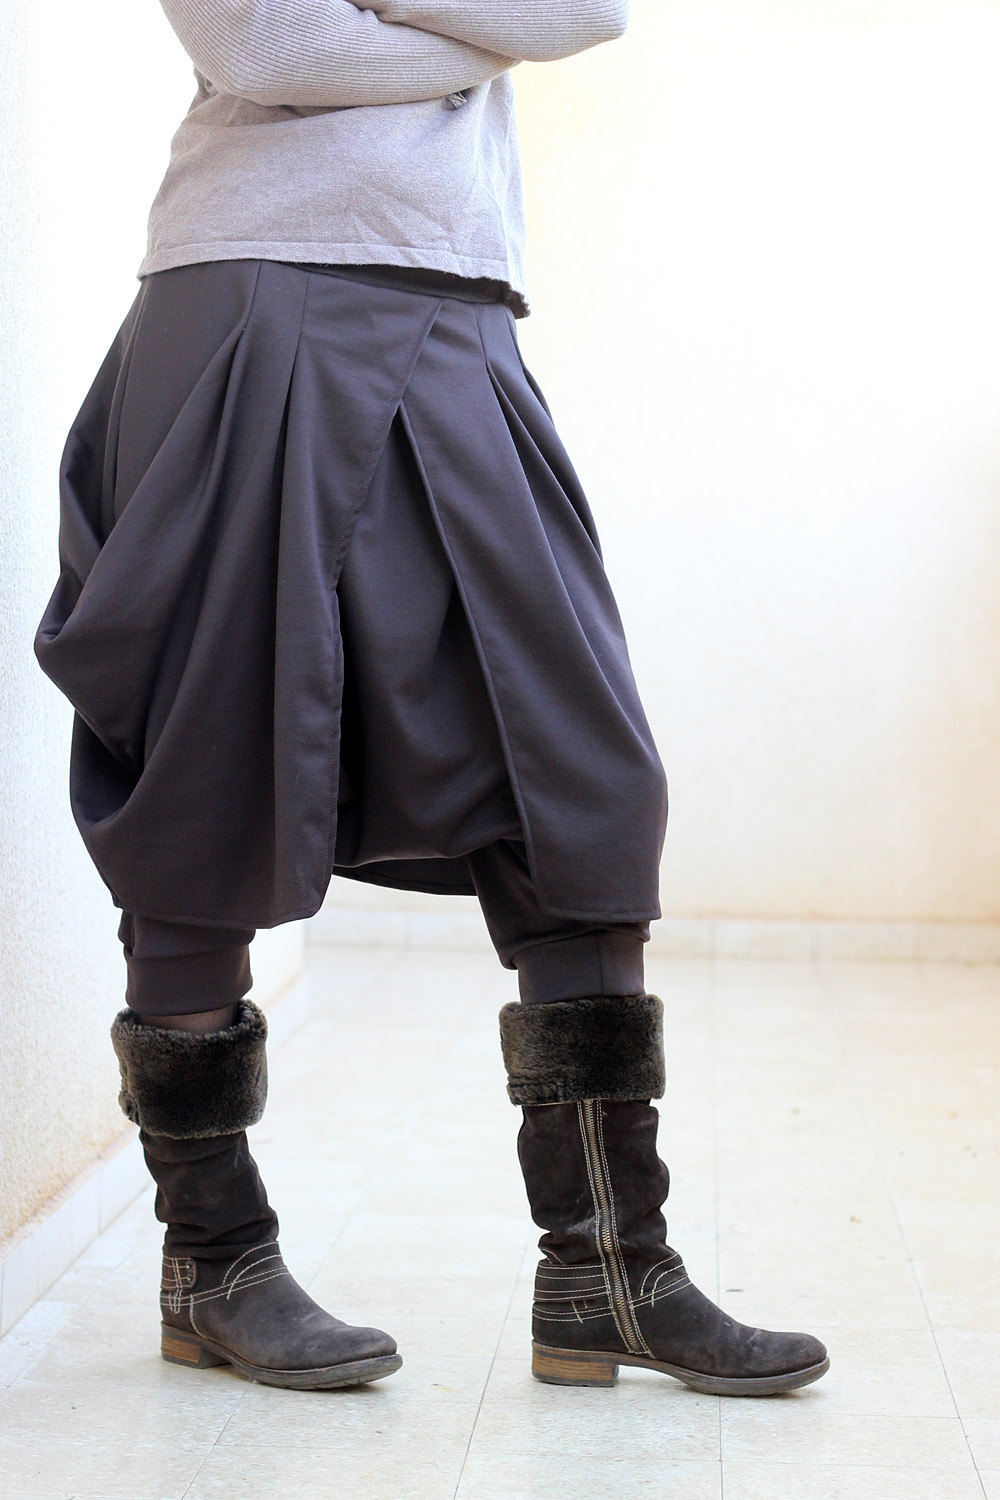 2-in-1 Stylish BOHO Pants With Skirt